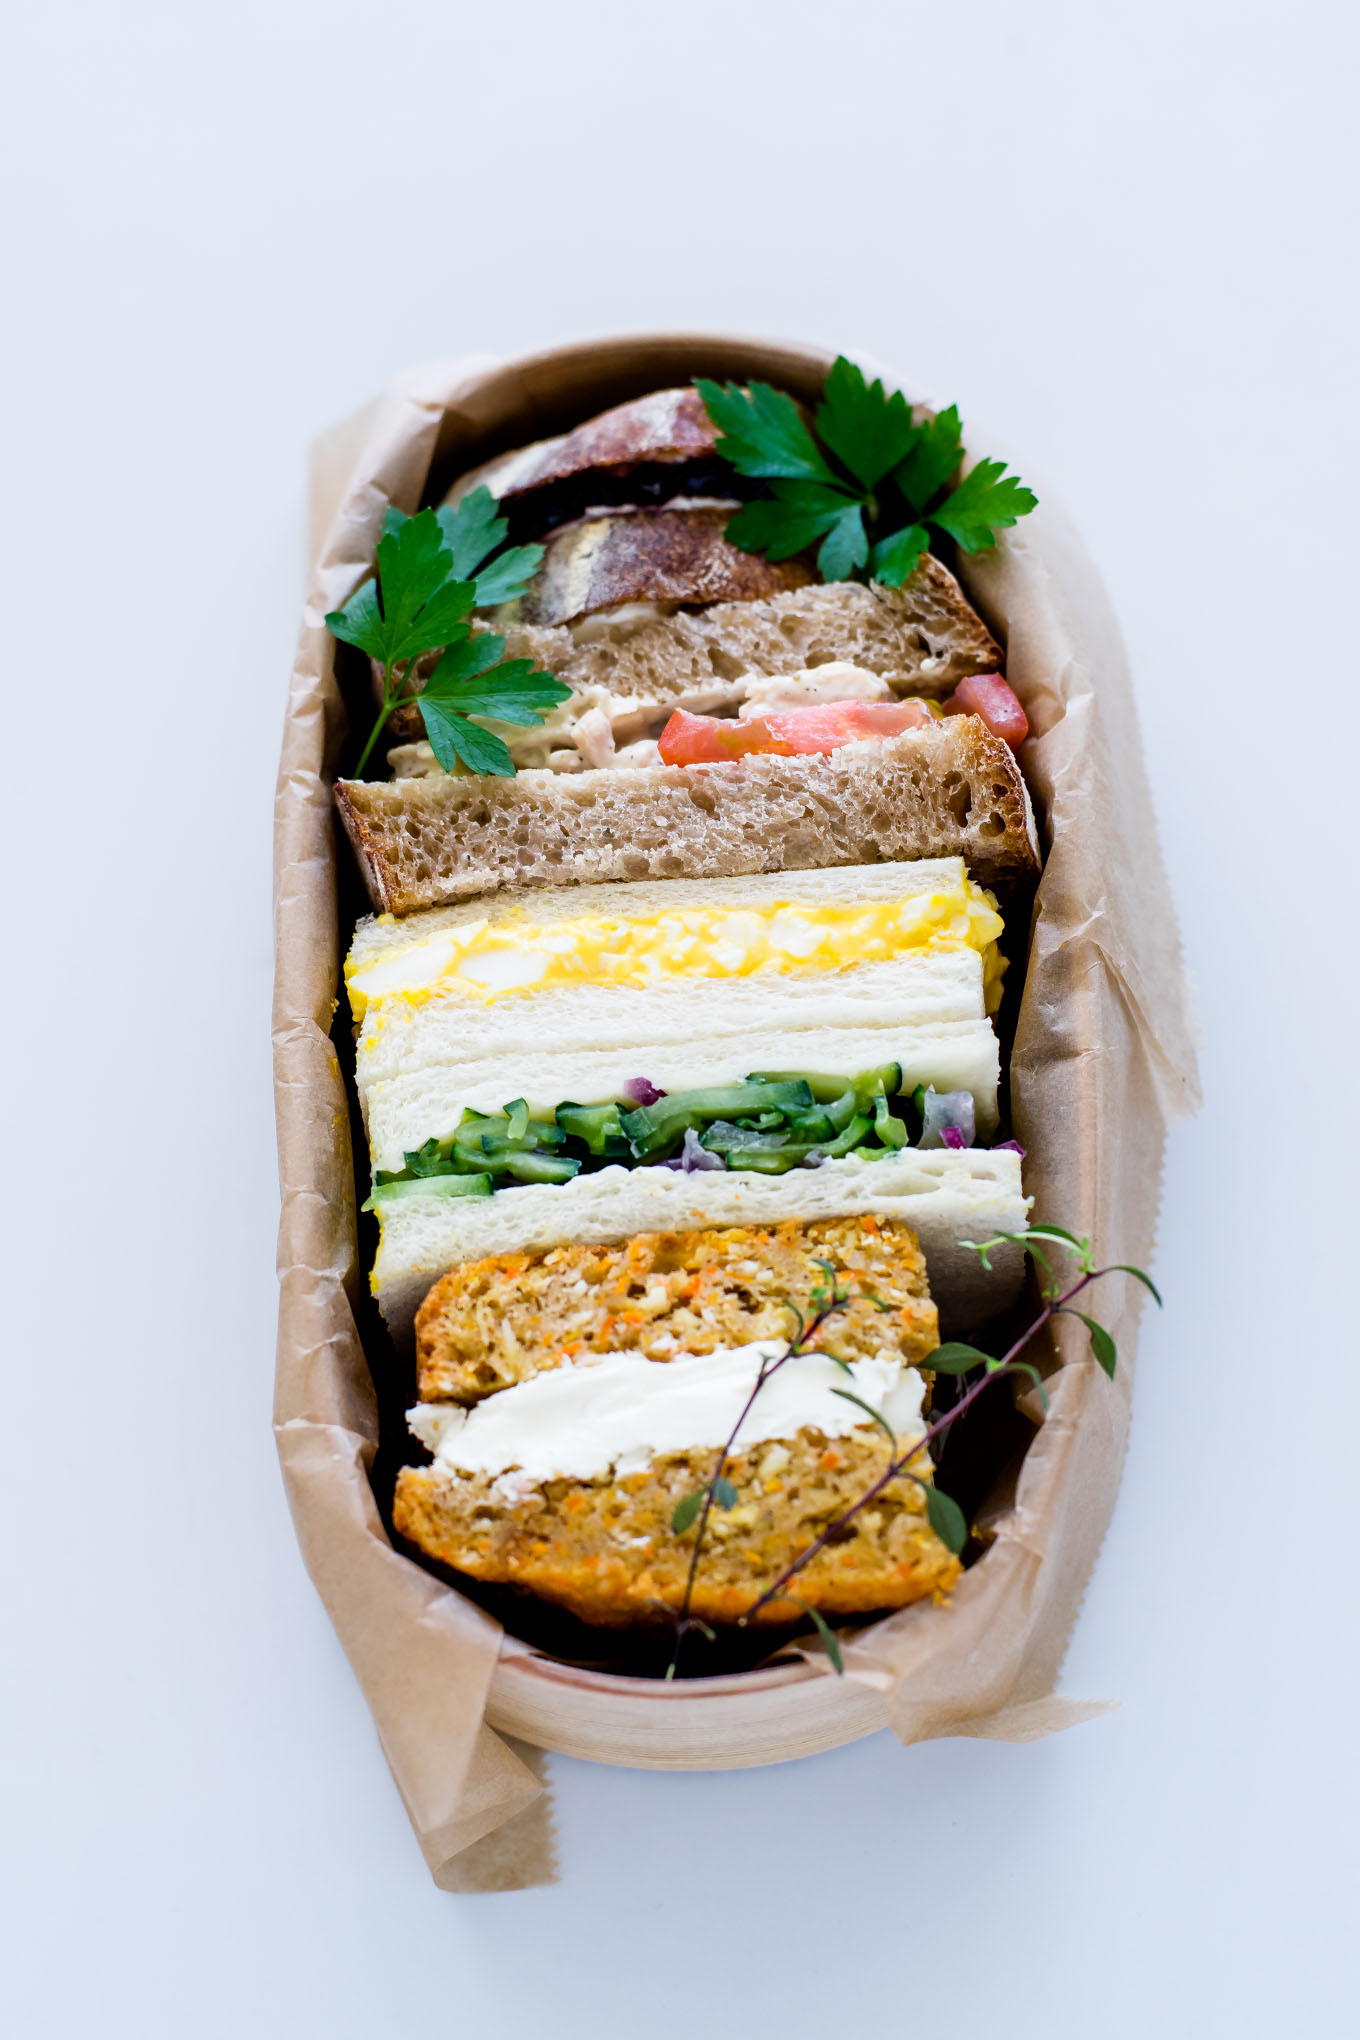 how-to-pack-a-sandwich-in-magewappa-bento-1